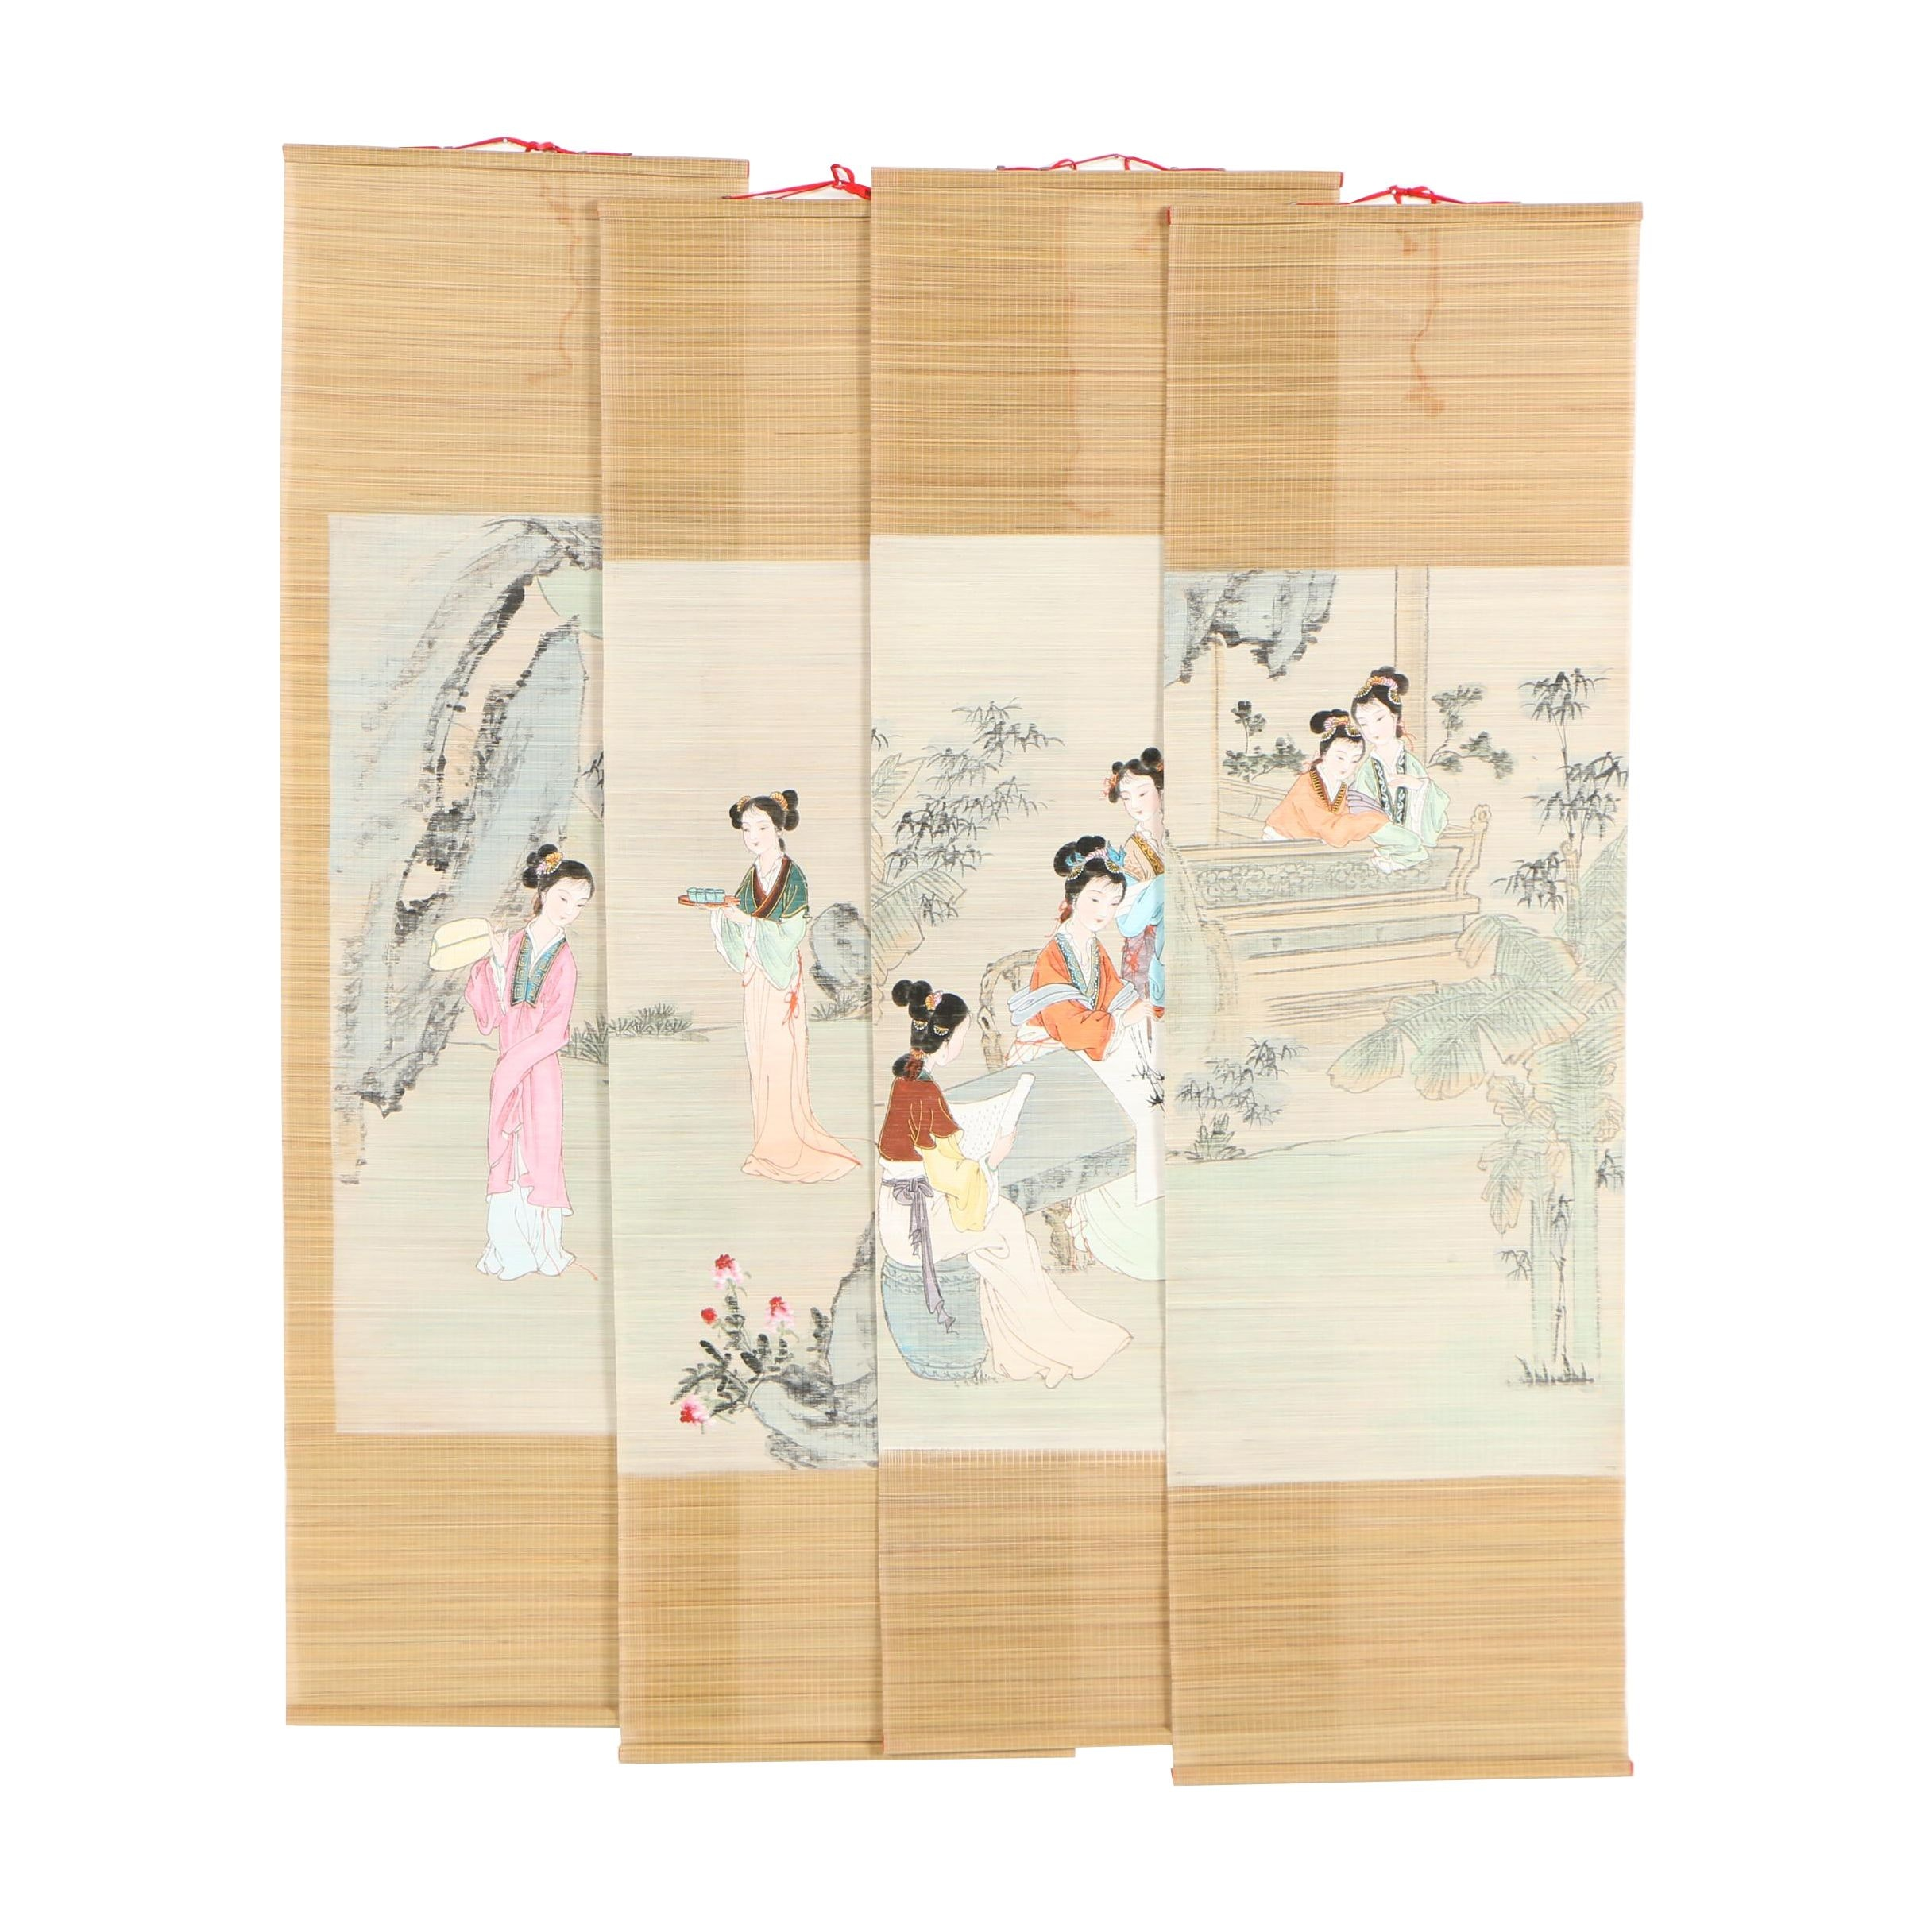 Chinese Four Panel Ink and Gouache Paintings on Bamboo Scrolls